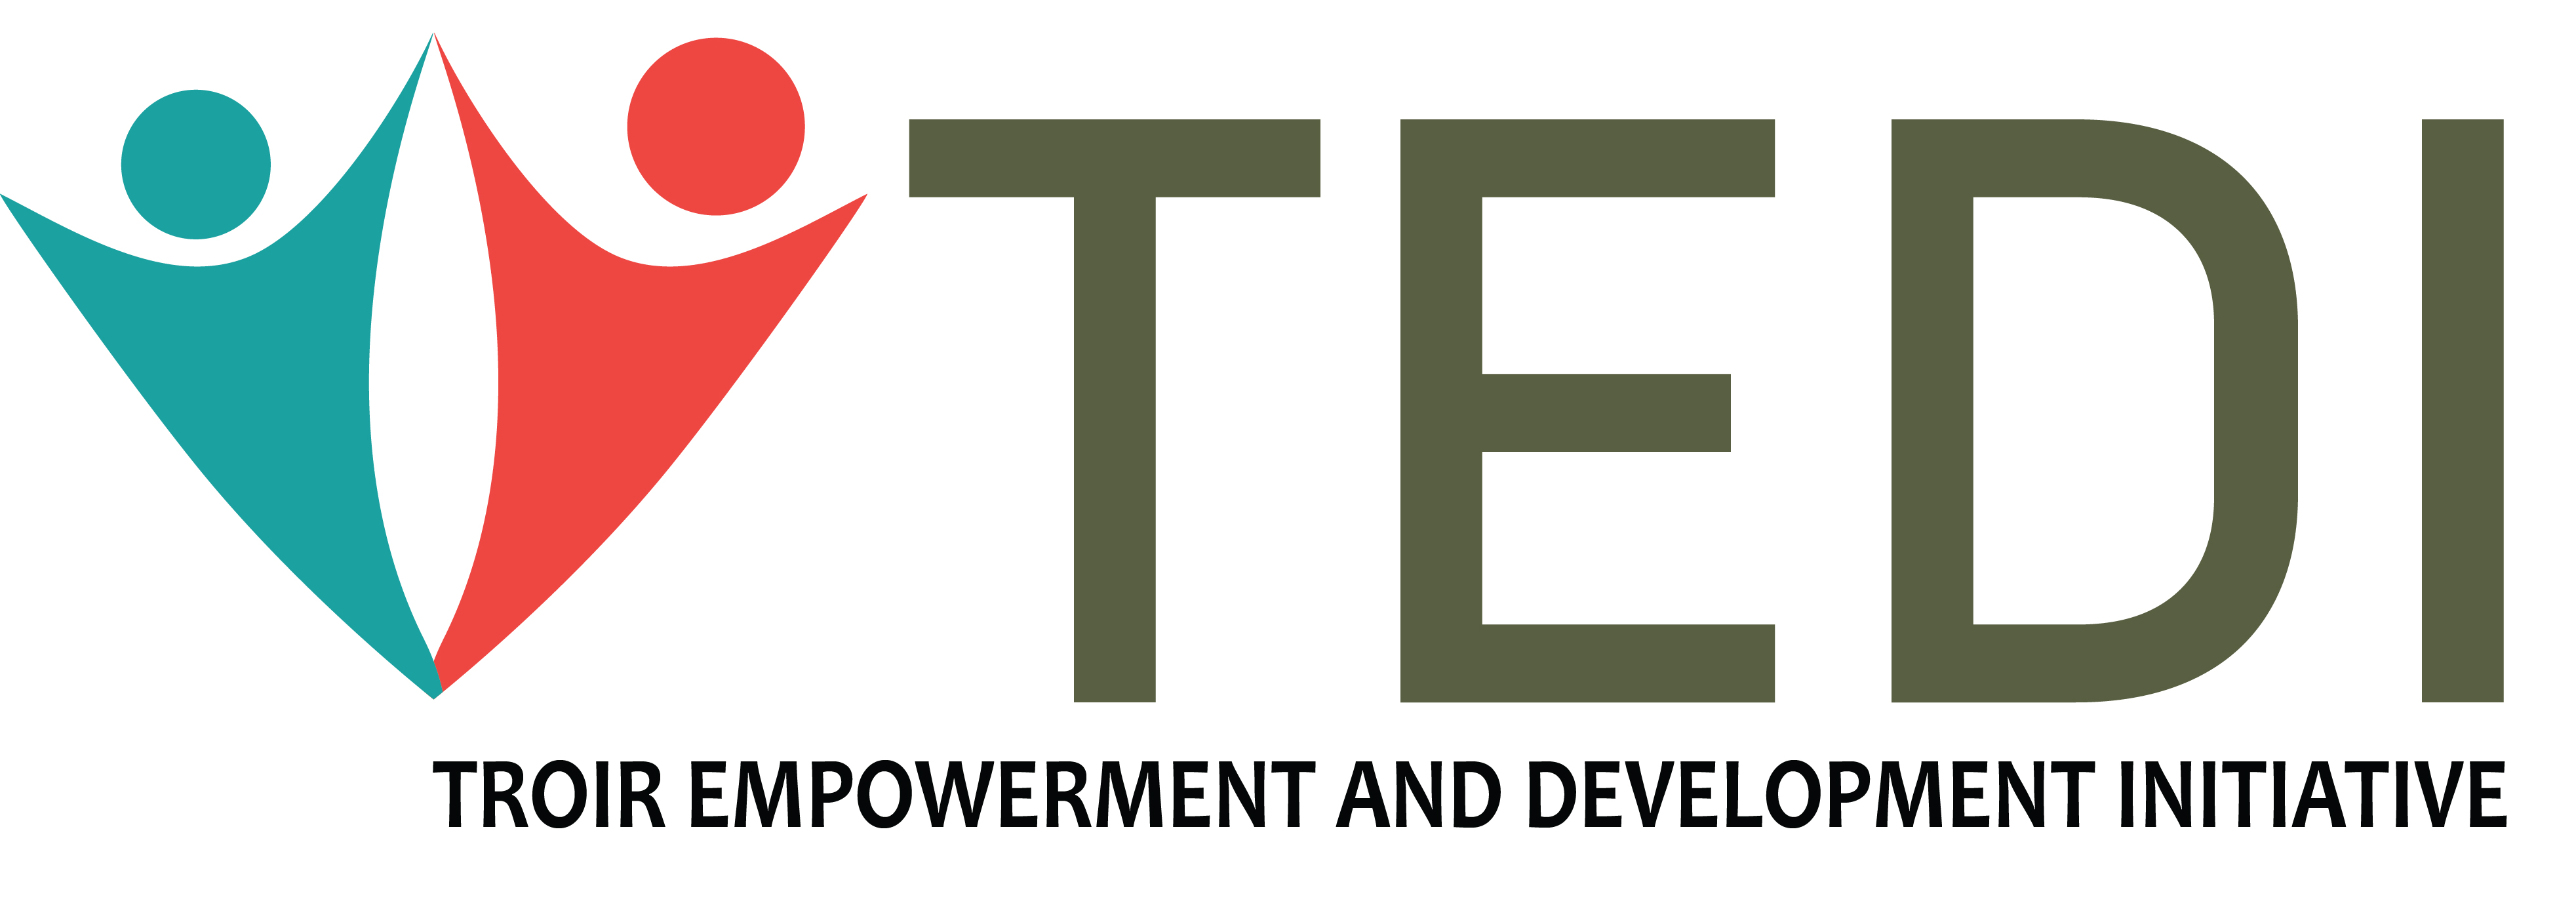 TROIR EMPOWERMENT AND DEVELOPMENT INITIATIVE